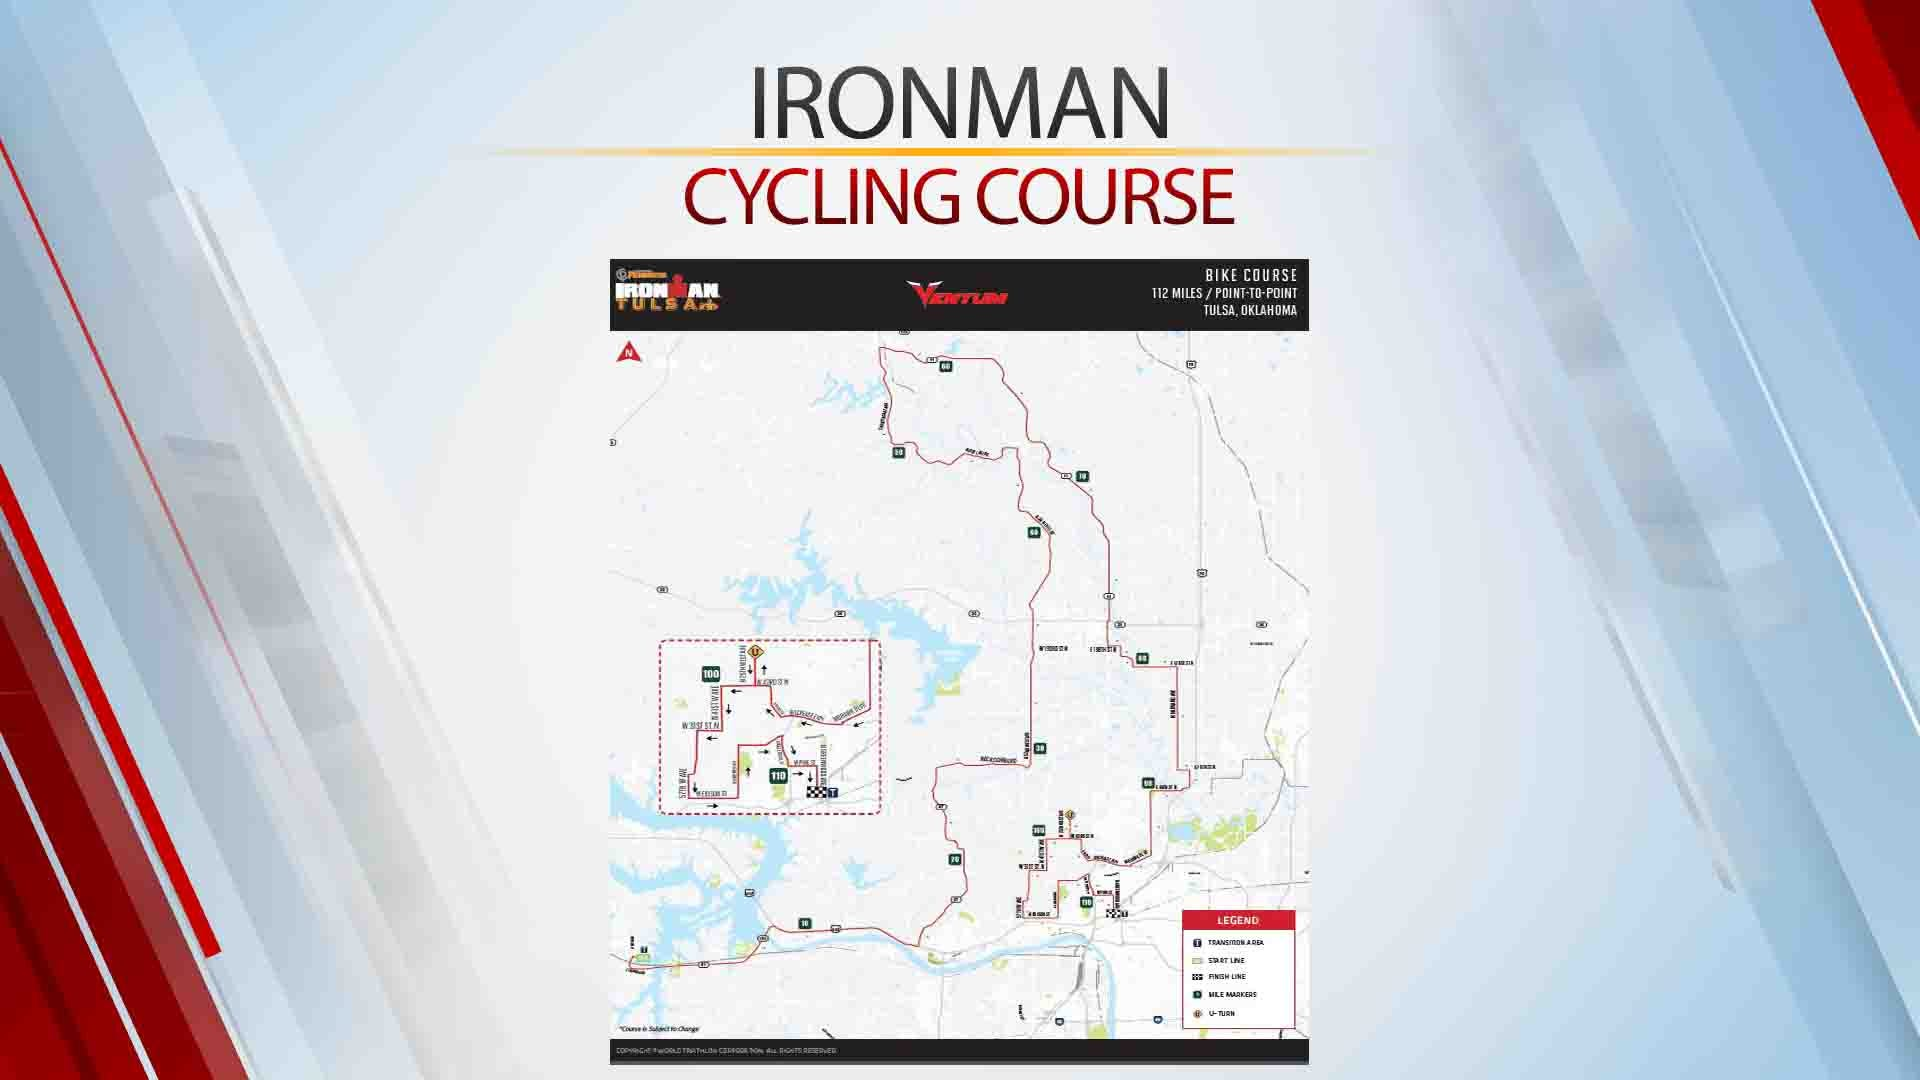 Ironman Reveals Cycling Course For May 2020